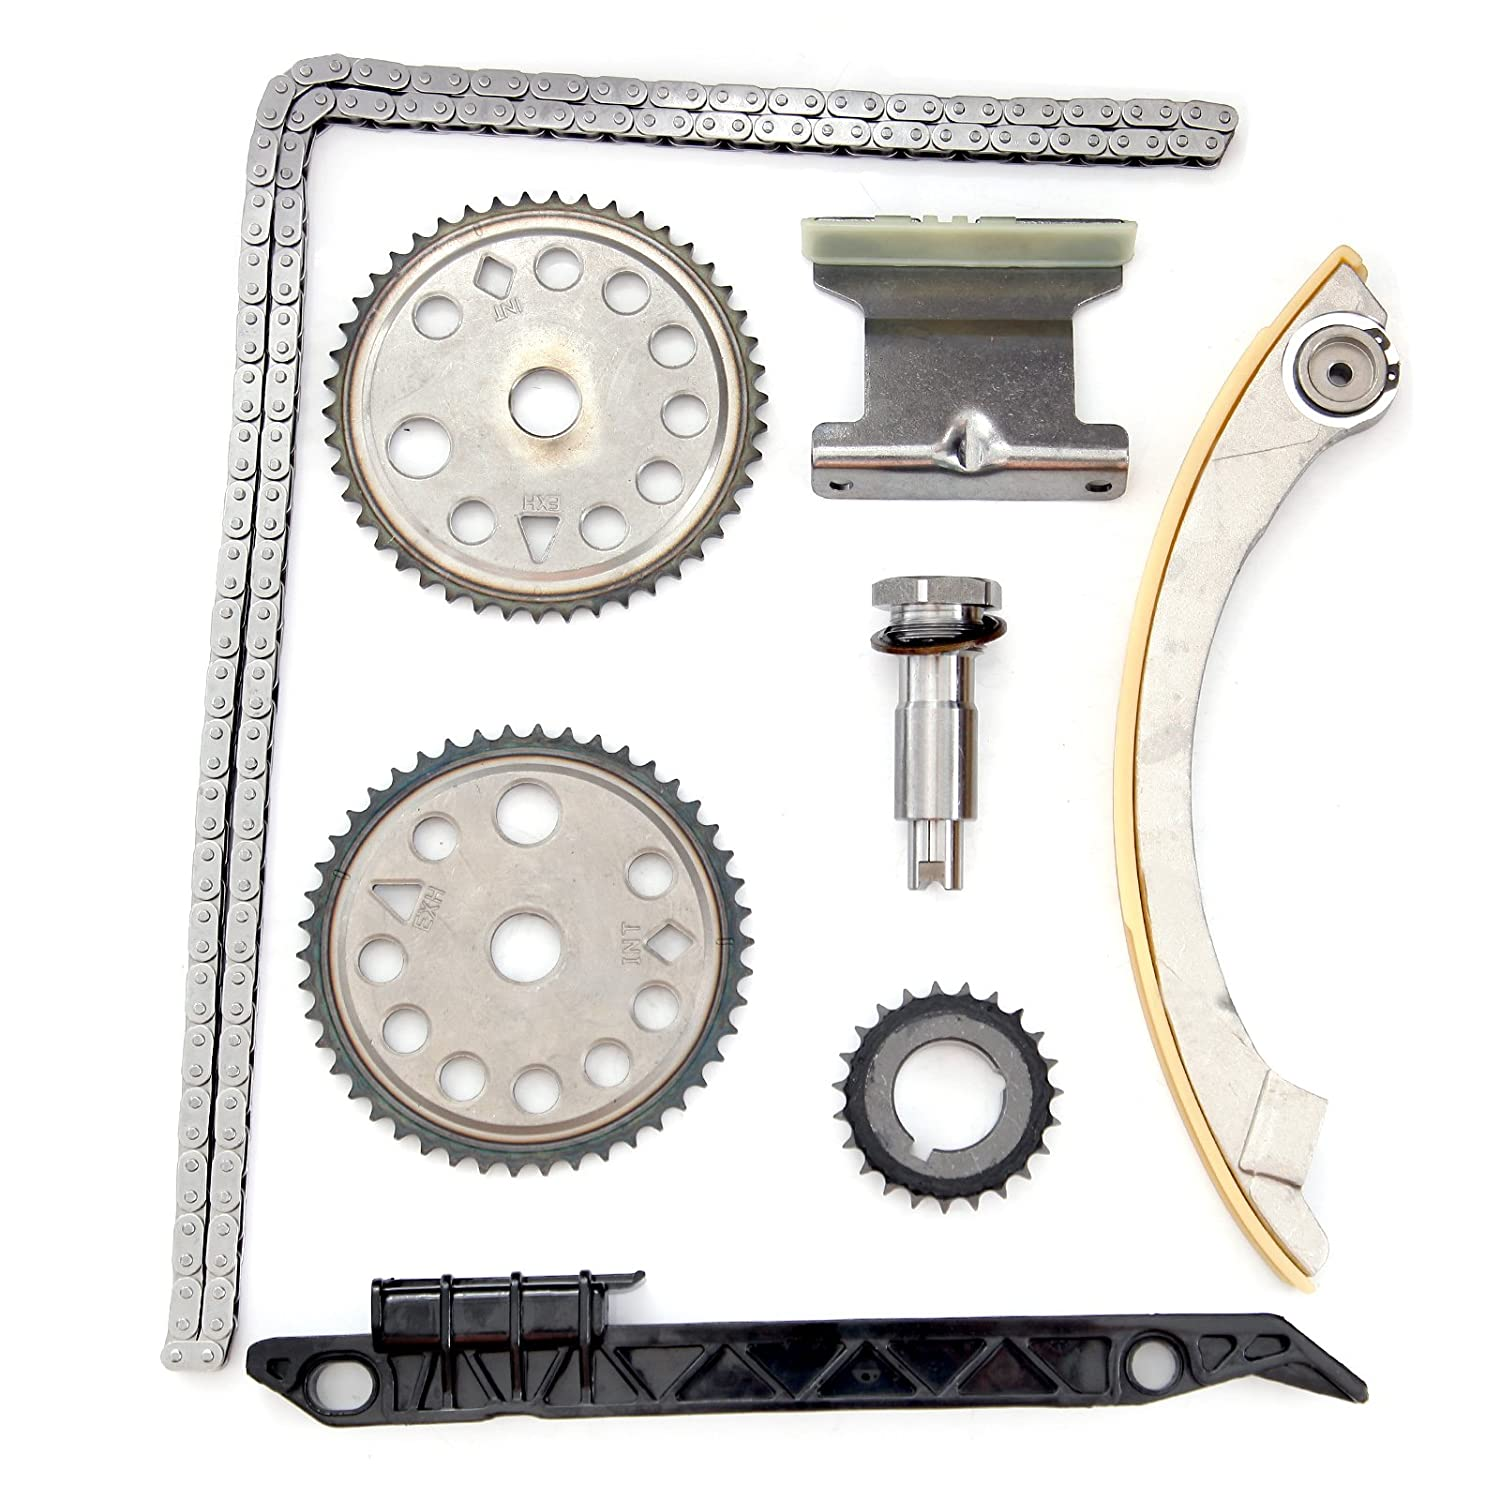 Timing Chain Kit Fits 00 11 Gm 20l 22l Dohc Ecotec 2002 Saturn Vue 2 Liter Engine Diagram Z22se L61 L42 Lsj Lnf Set Automotive